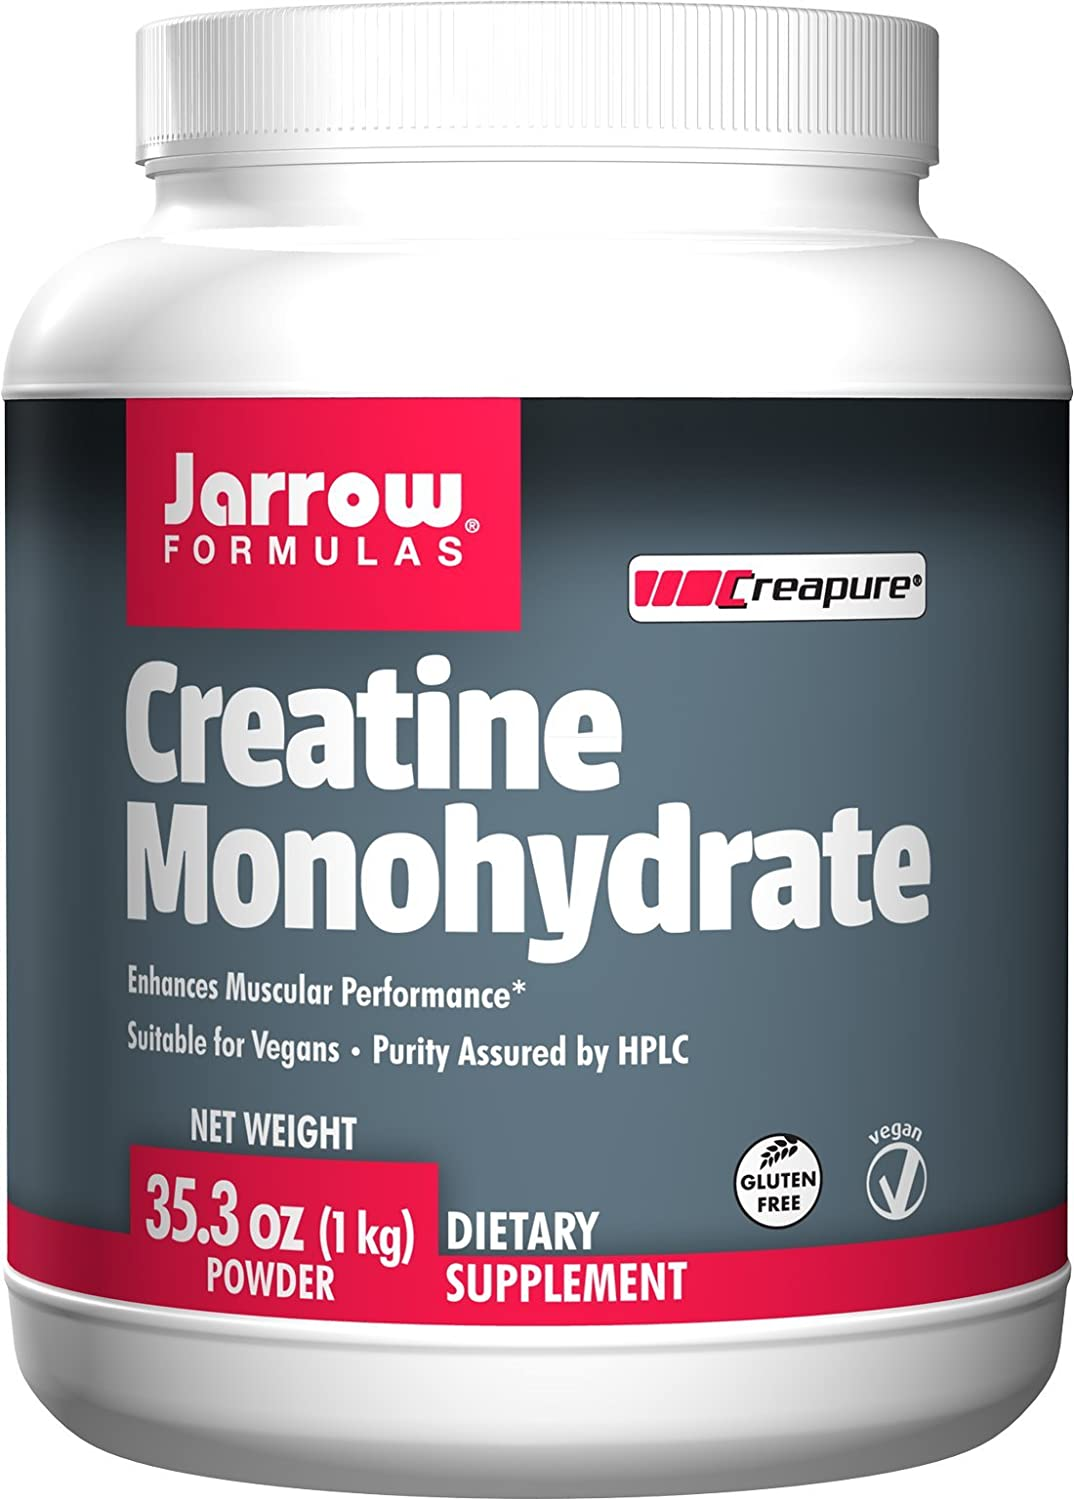 Jarrow Formulas – Creatine Monohydrate Powder – 35.3oz 1 kg